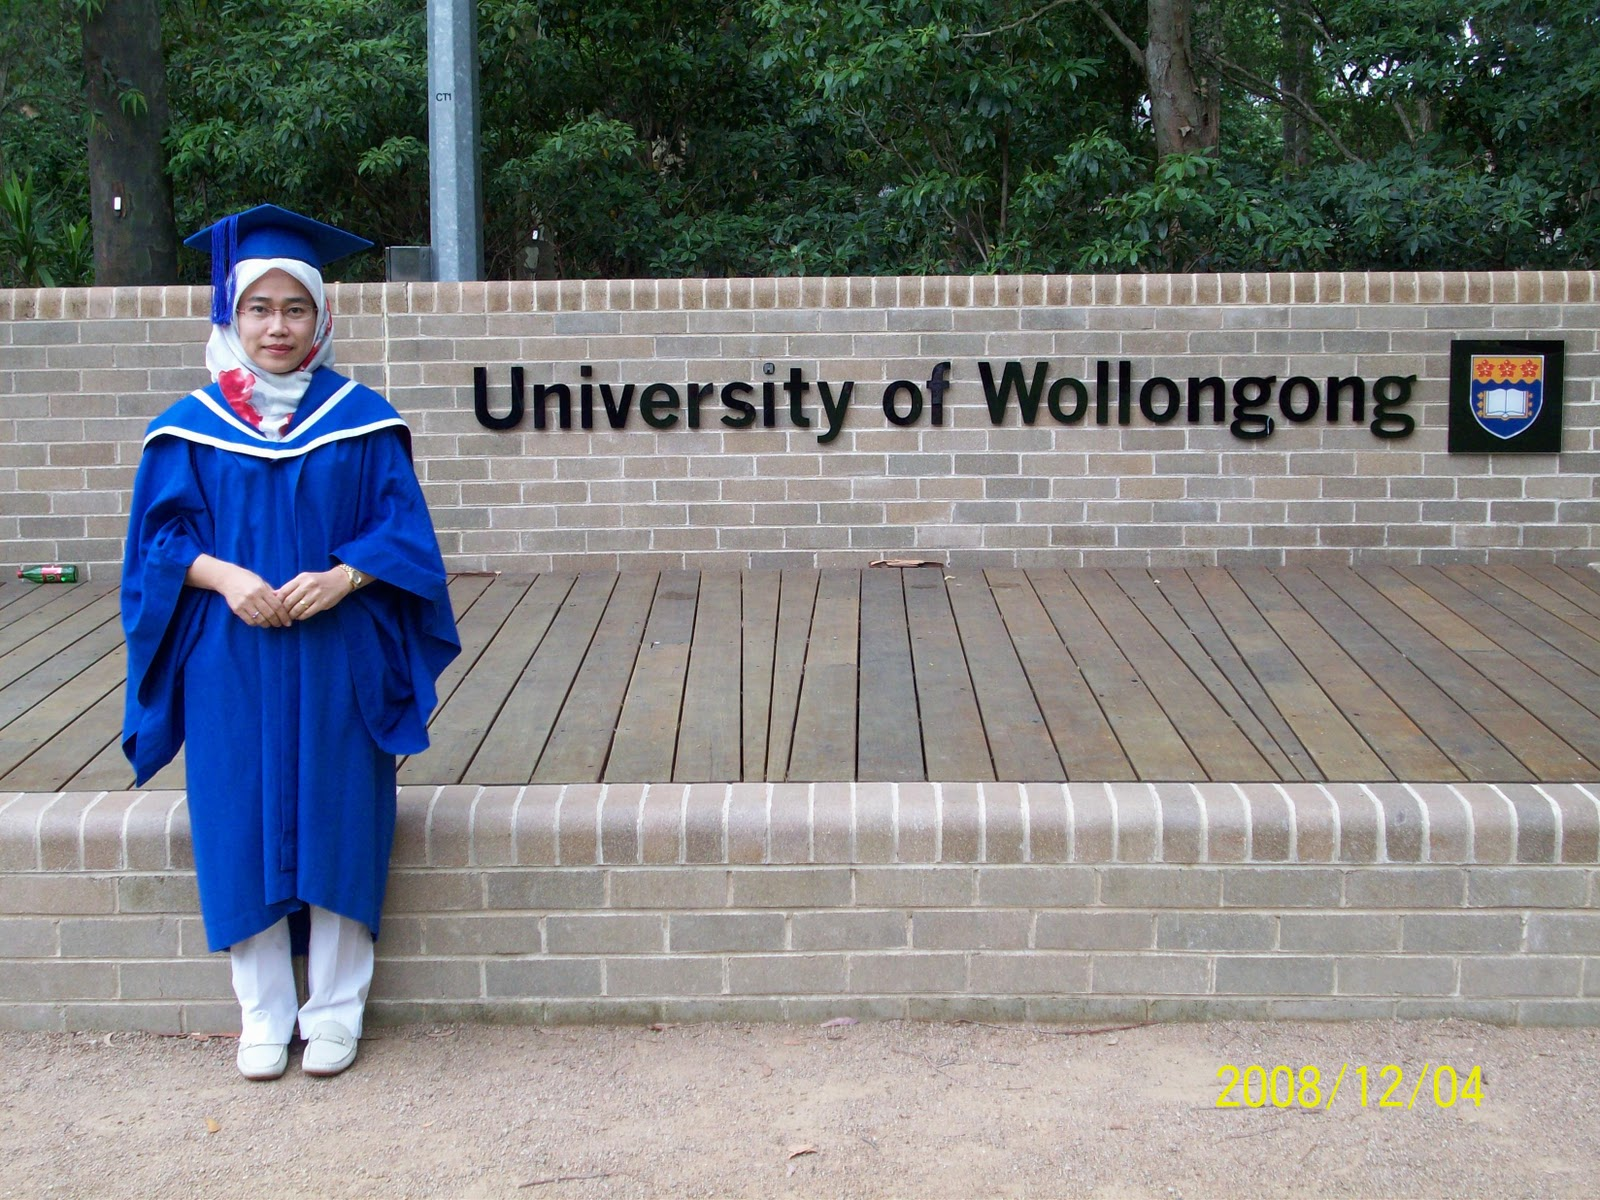 wollongong teaching - photo#32